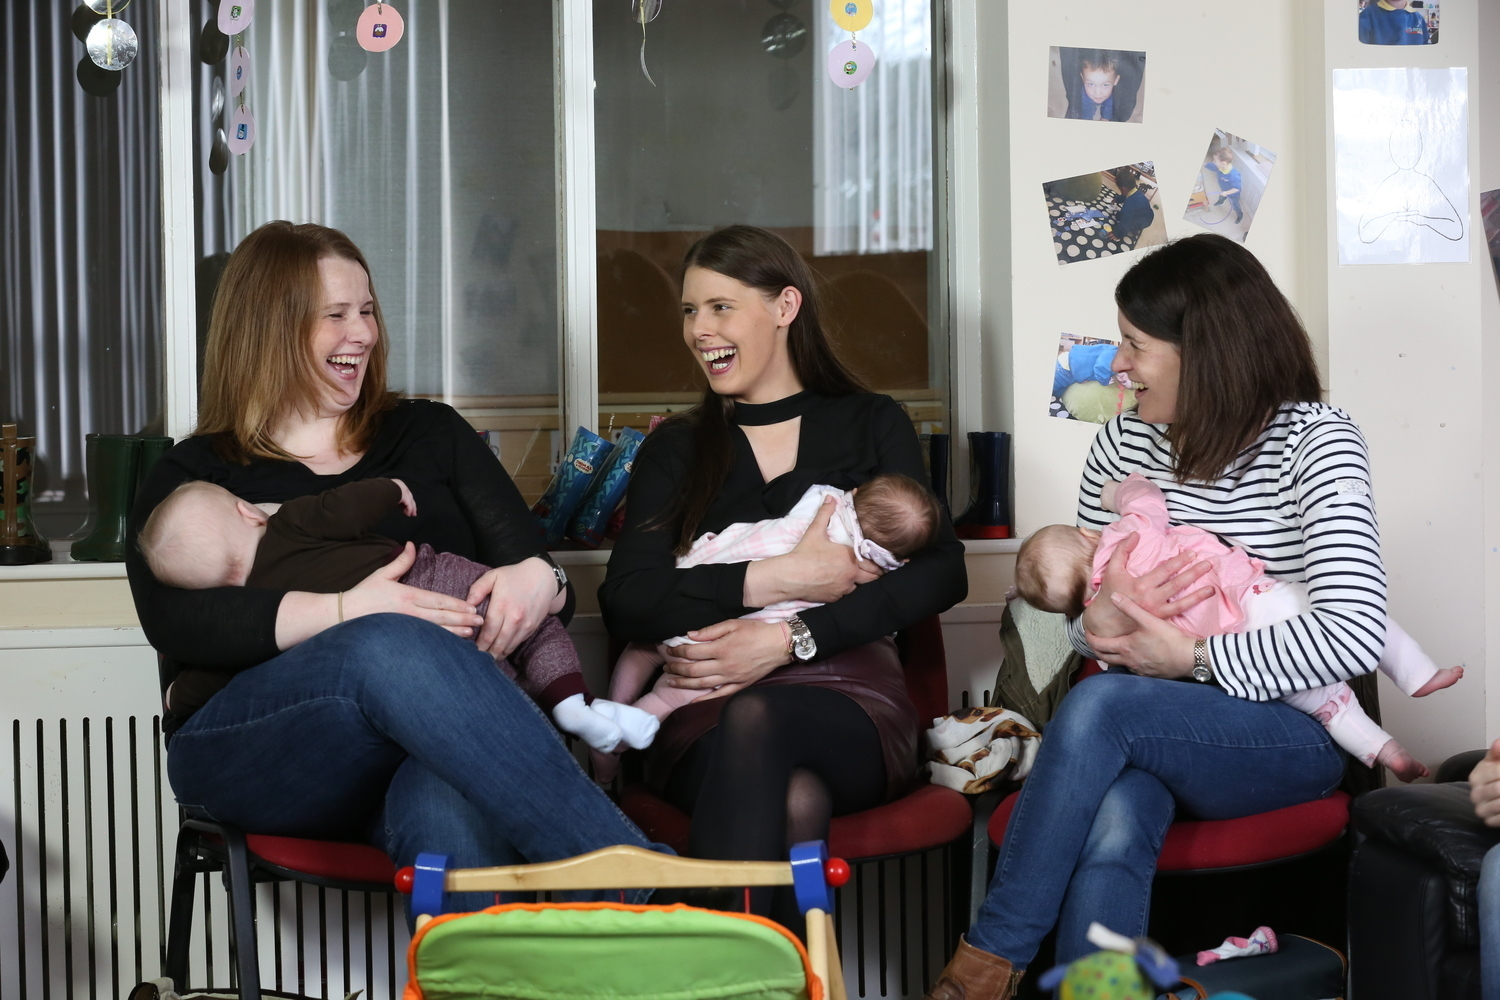 Megan and Austin Shaw, Julie Ann and Chloe Houston and Jillian and Rosanna McFaul at Larne Breastfeeding Group. Photo by Press Eye